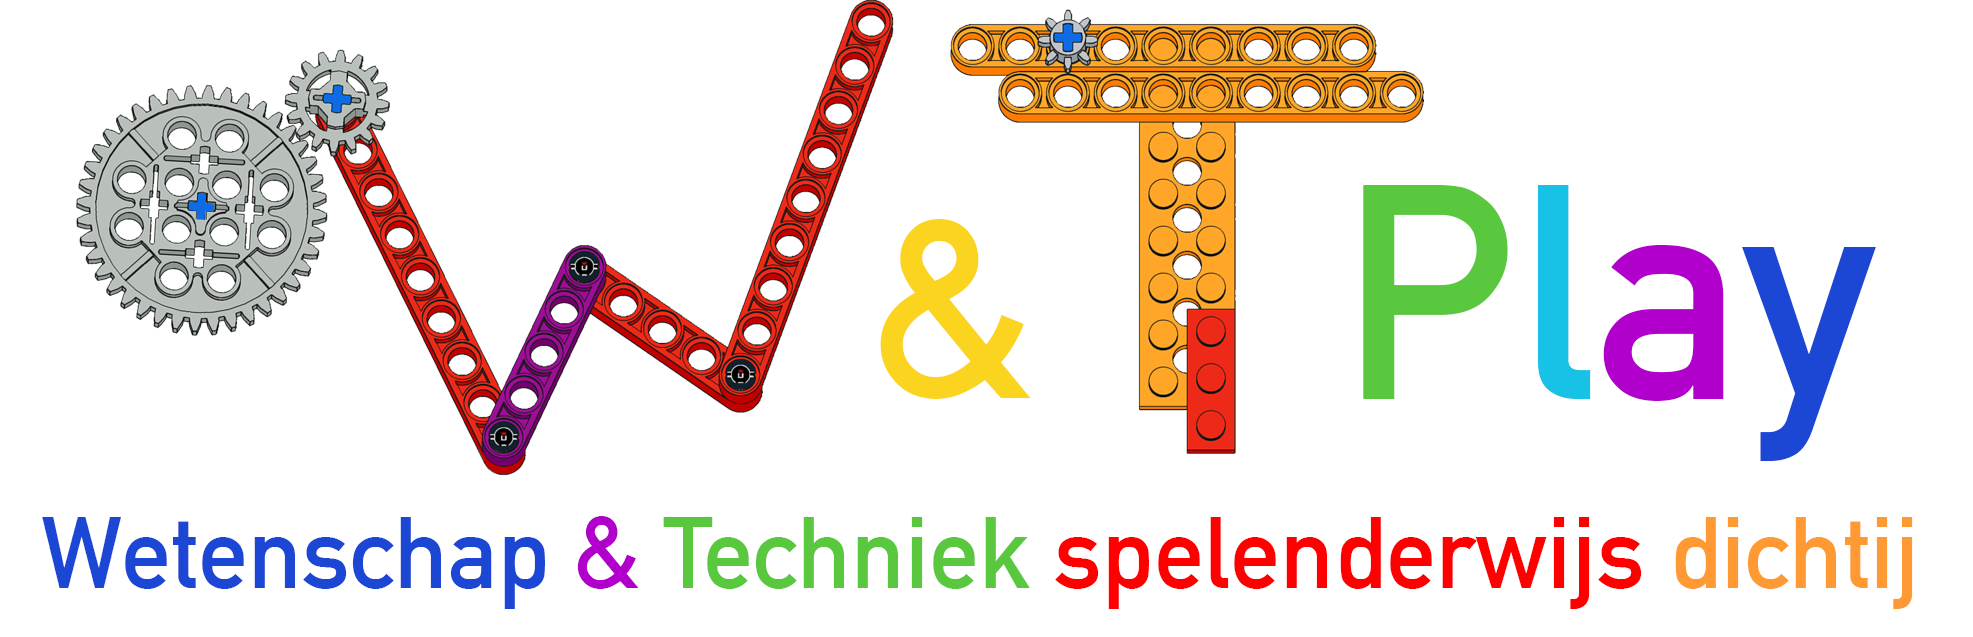 Stichting W&T play